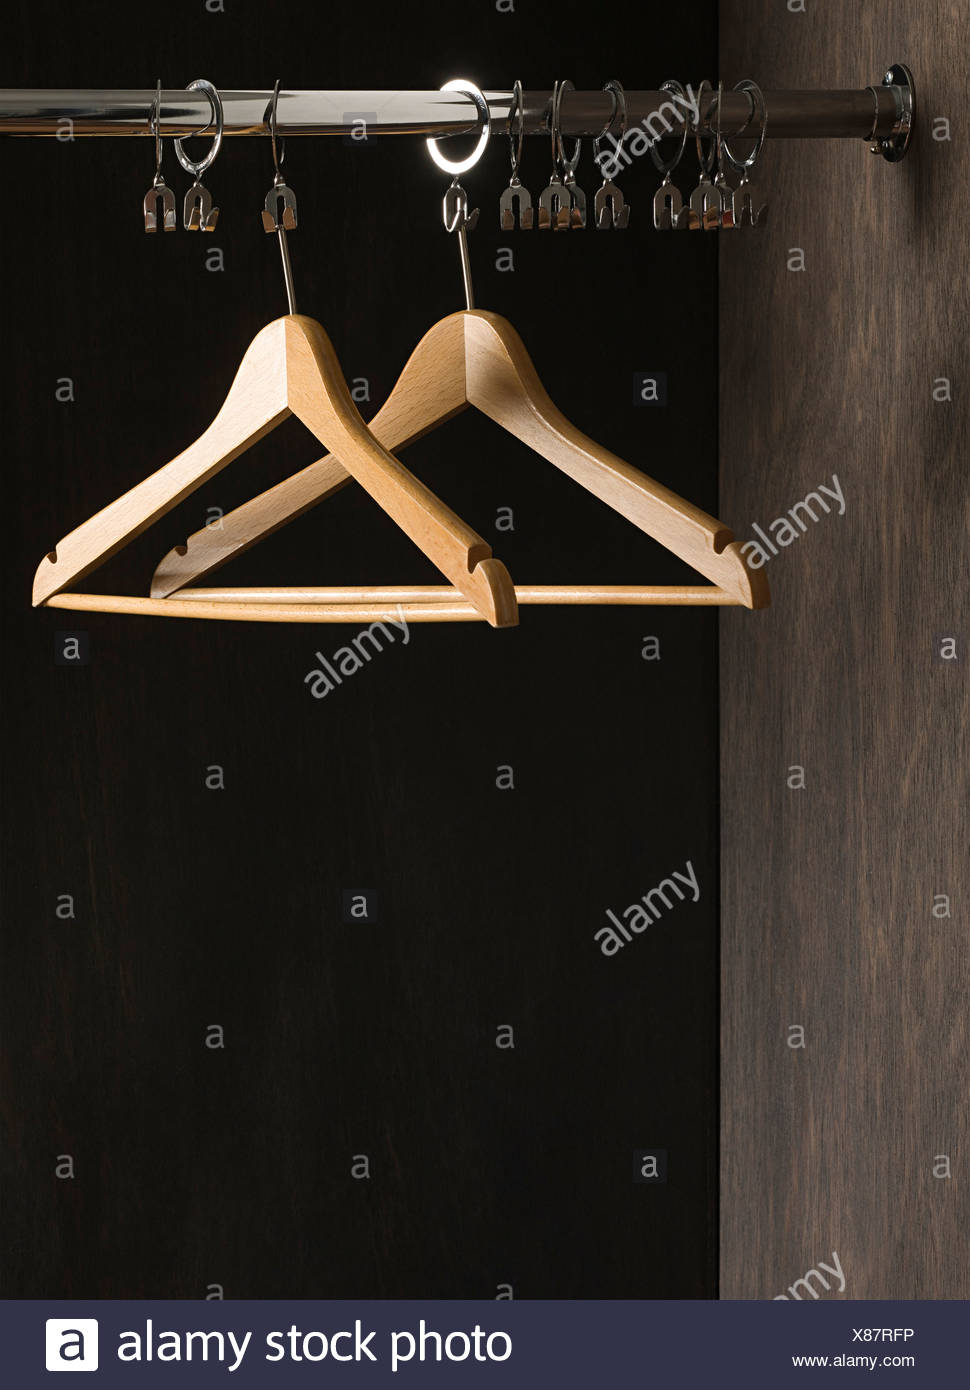 Clothes hangers in closet - Stock Image